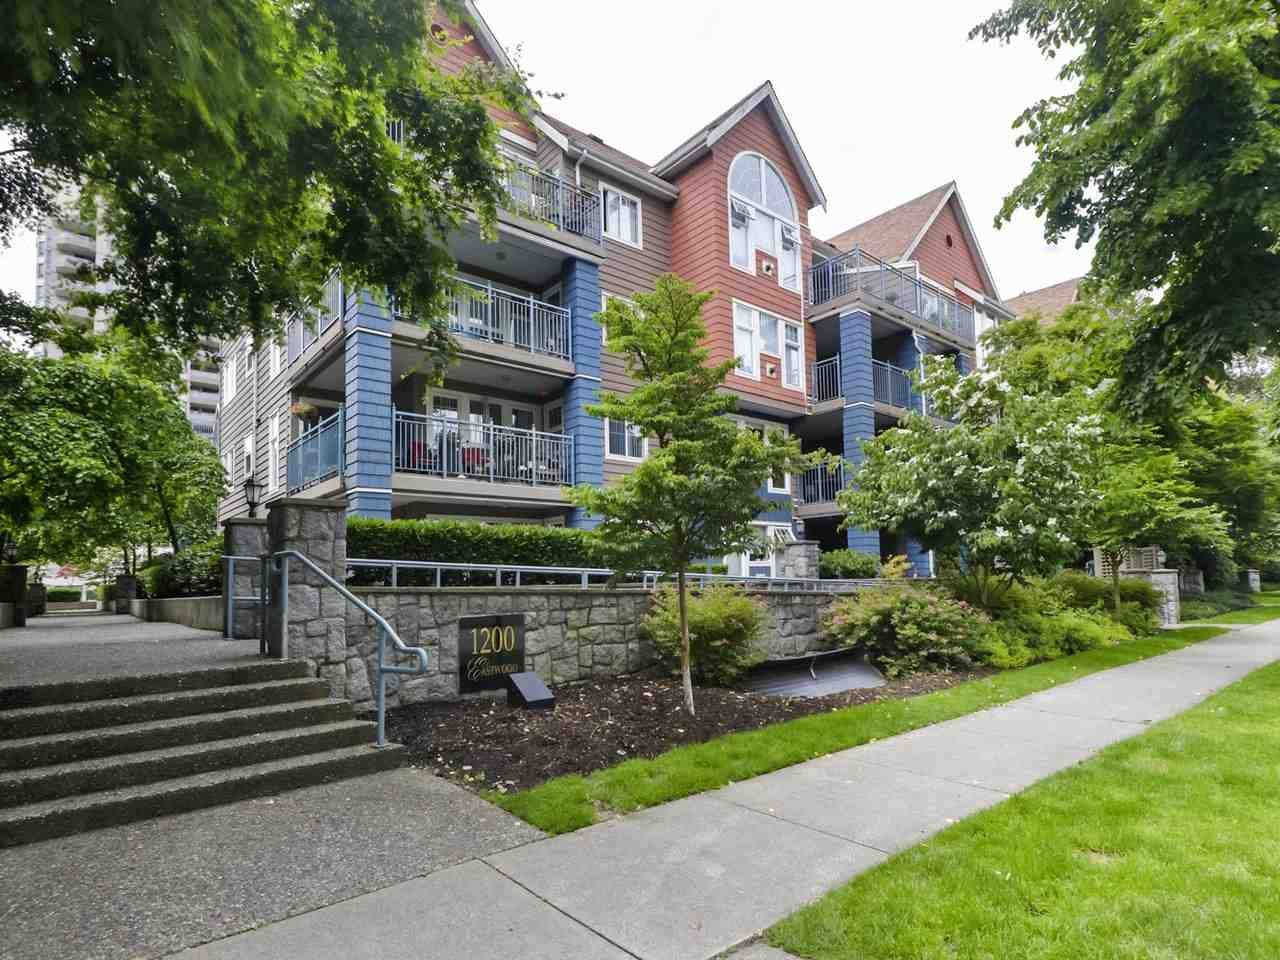 """Main Photo: 108 1200 EASTWOOD Street in Coquitlam: North Coquitlam Condo for sale in """"LAKESIDE TERRACE"""" : MLS®# R2466564"""